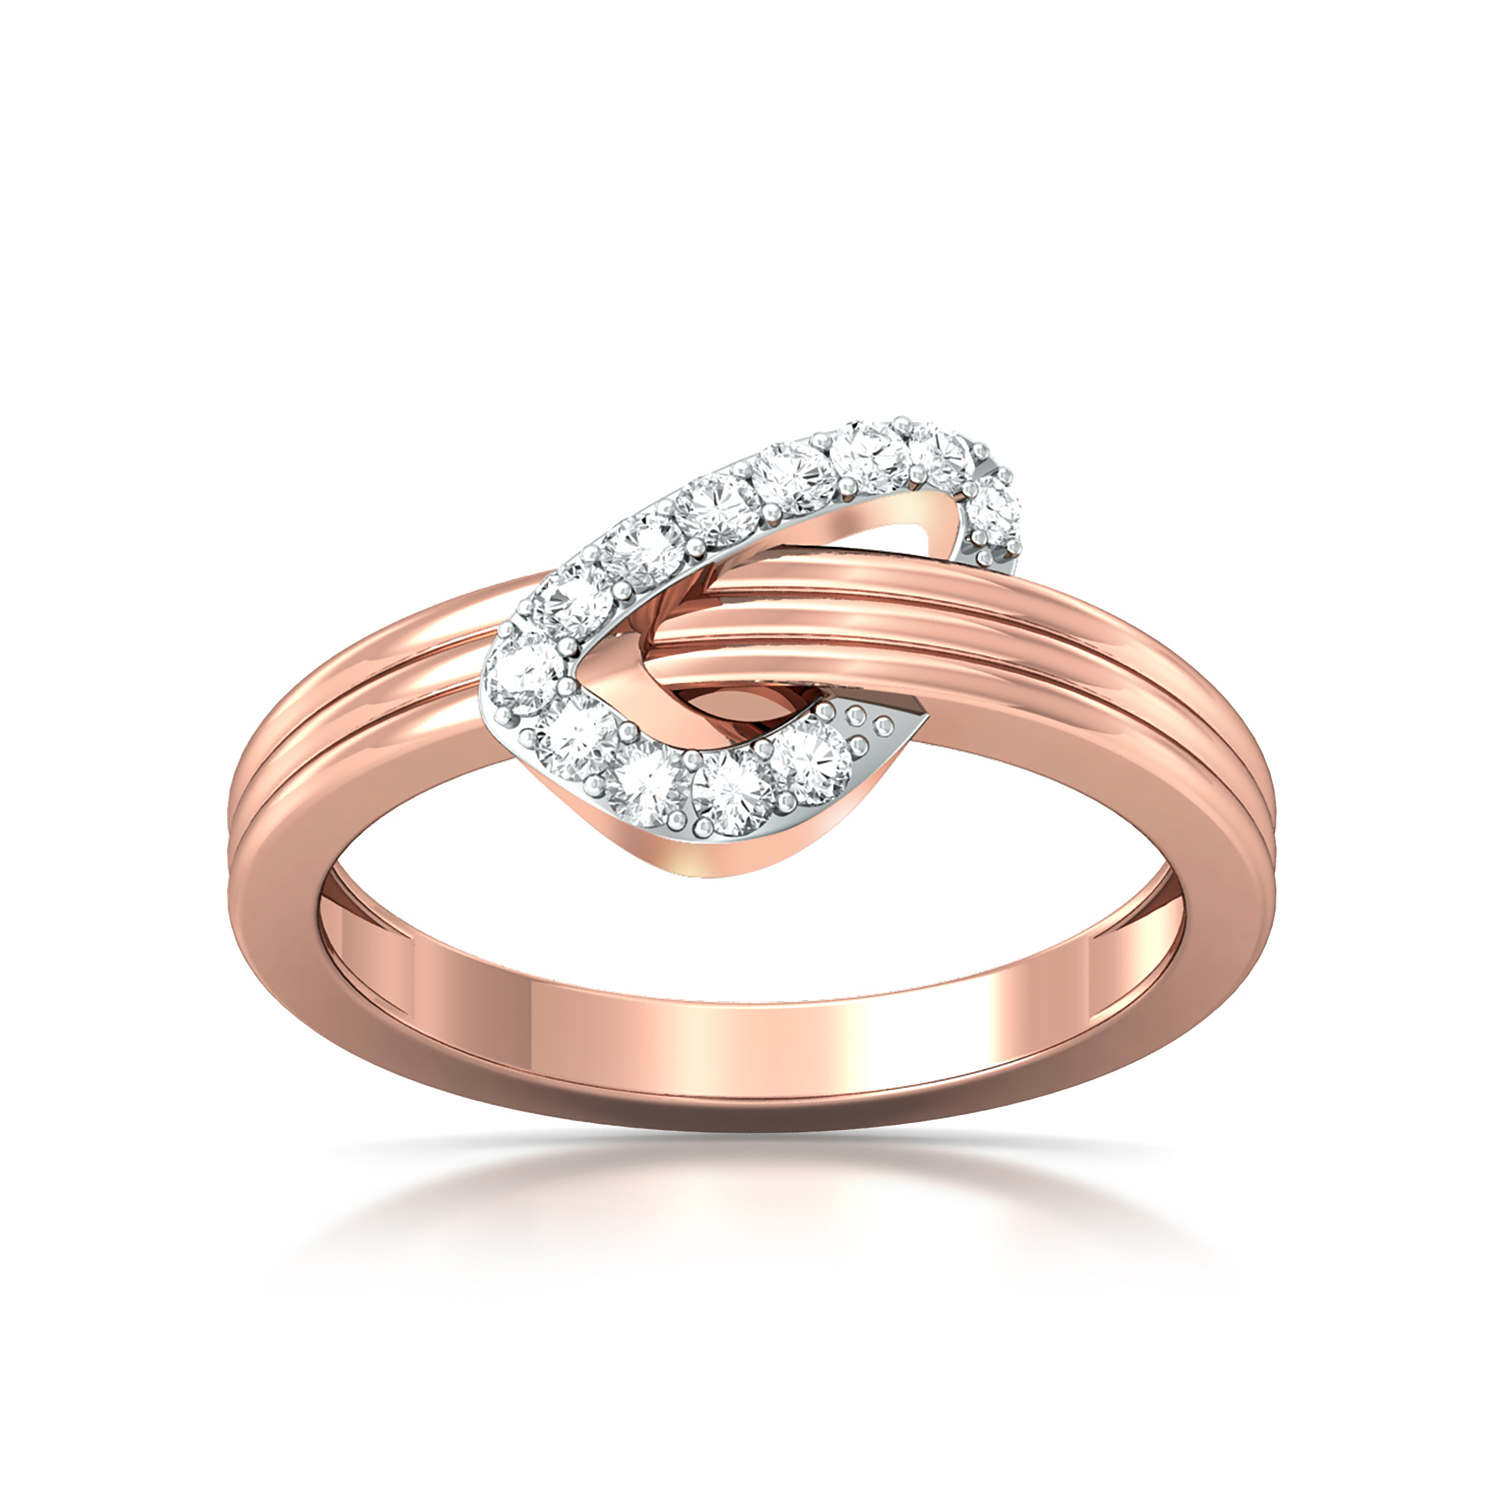 Tickled pink Diamond Rings